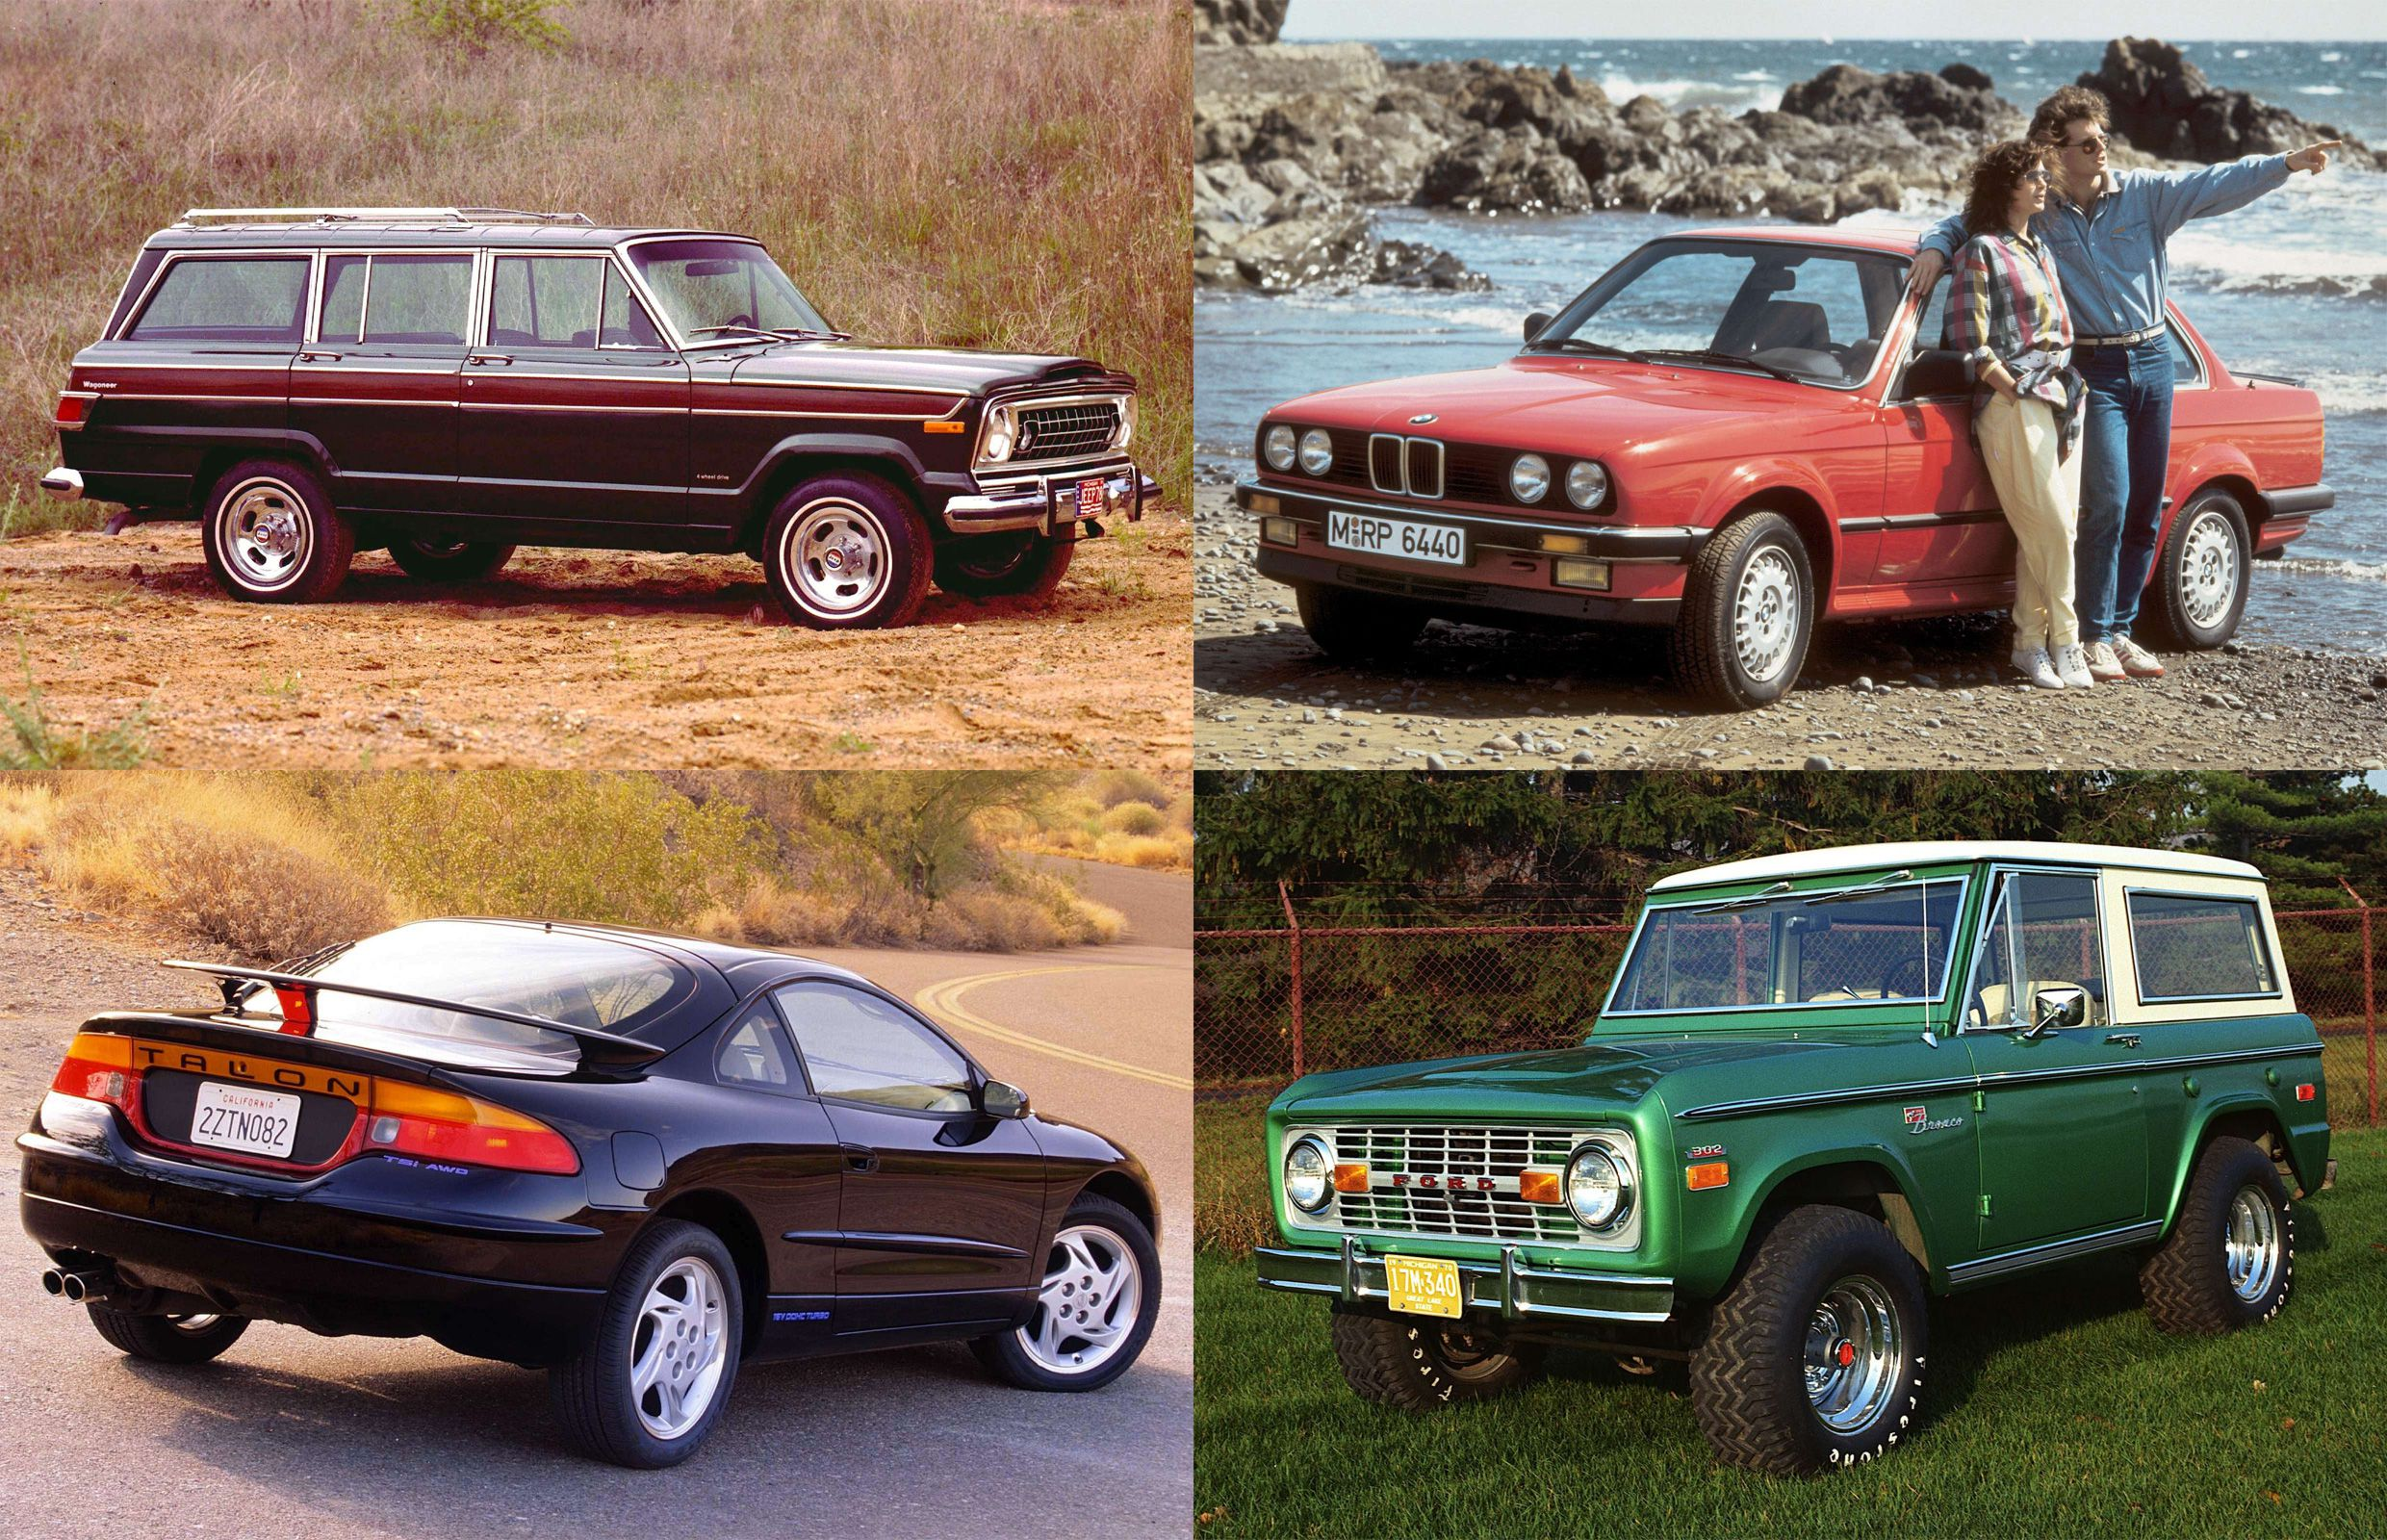 Retro AWD vehicles